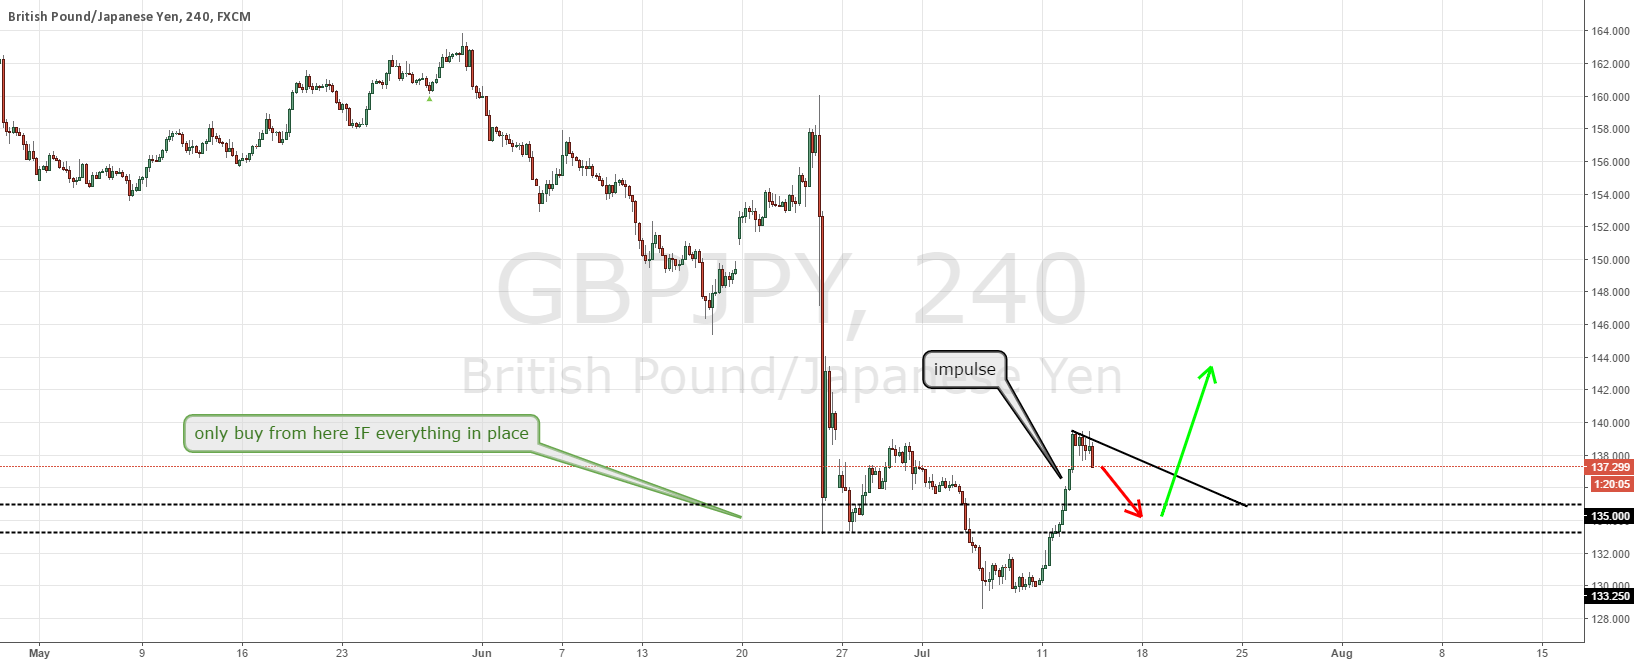 GBPJPY potential buy